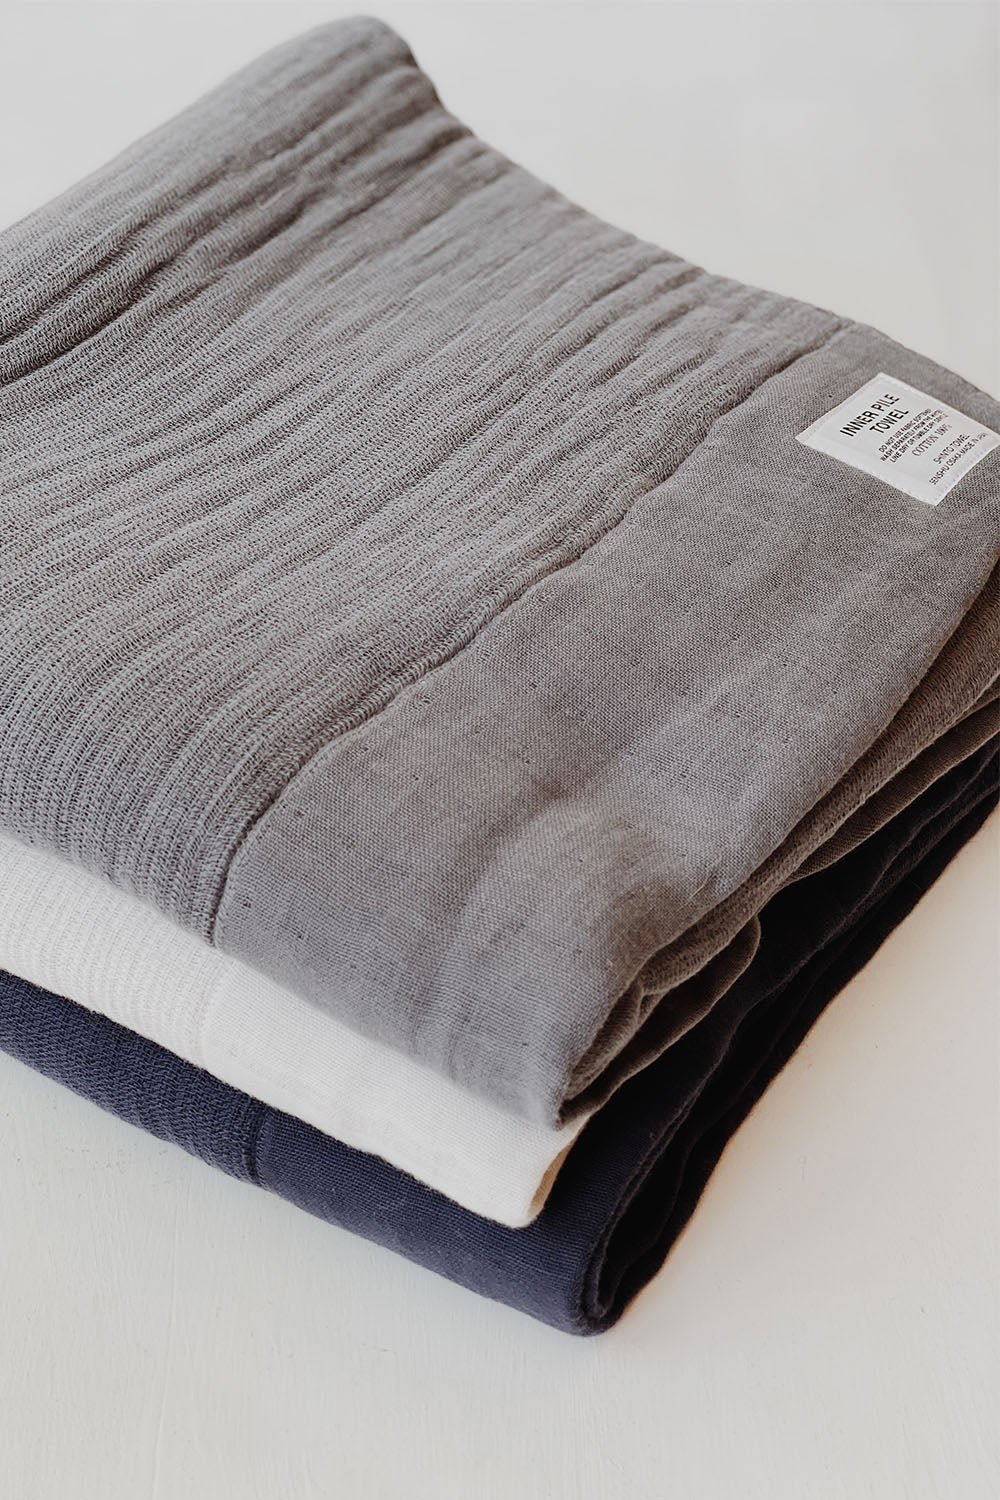 Shinto Inner Pile Towel - Navy